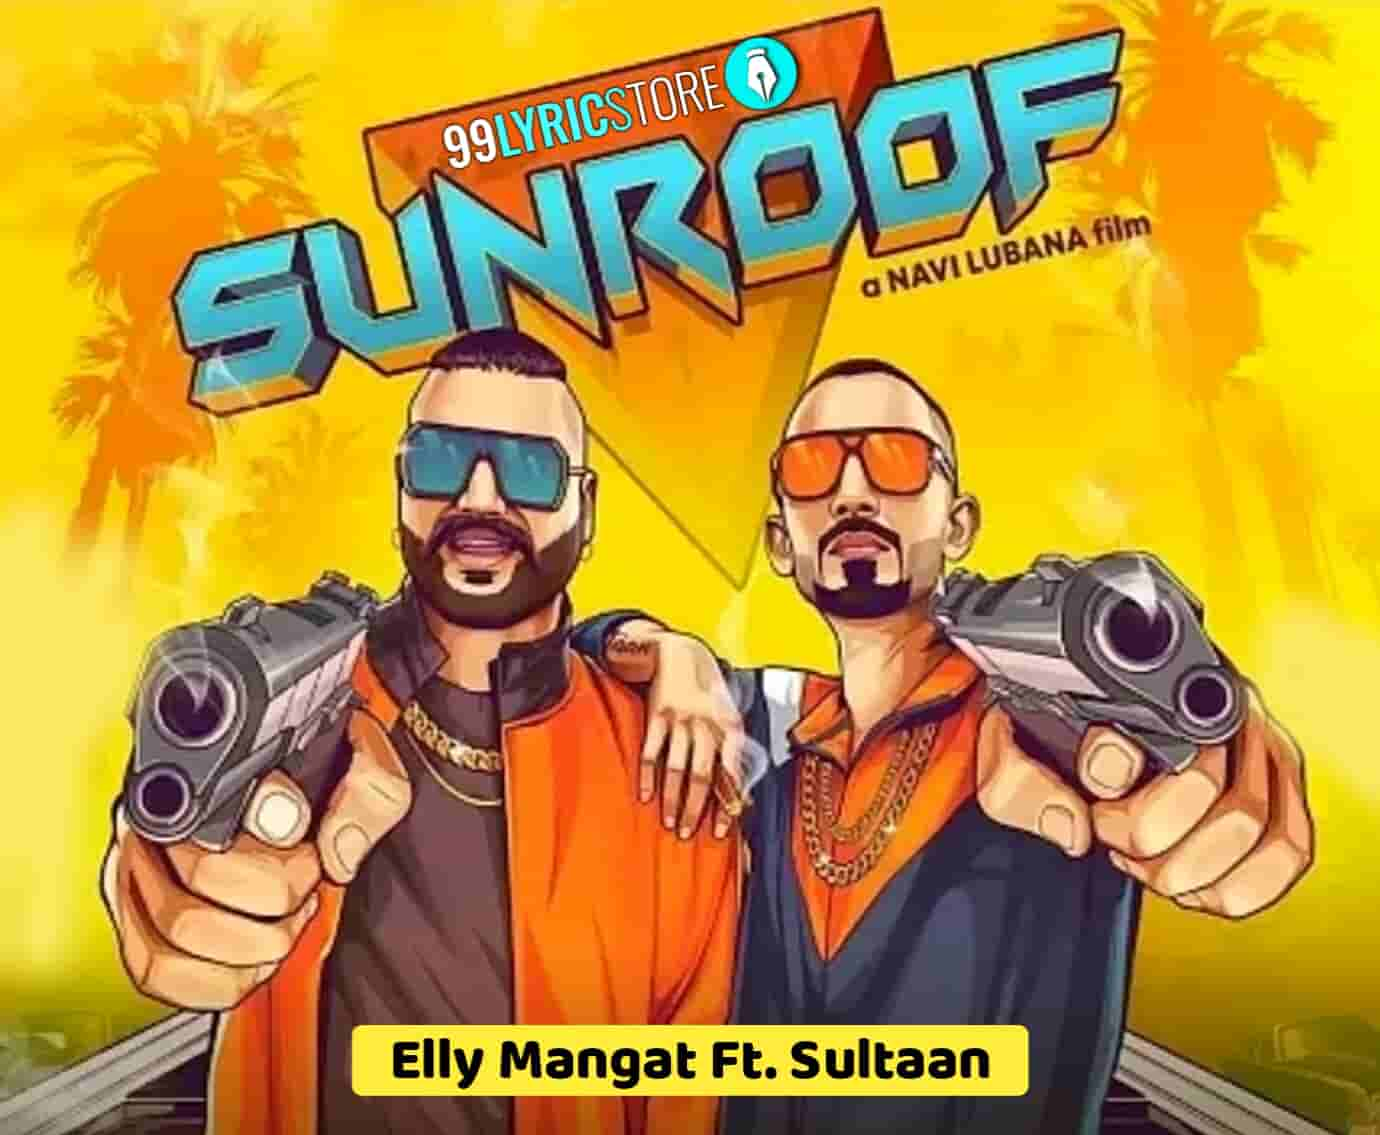 Sunroof Punjabi song sung by Elly Mangat feat sultaan